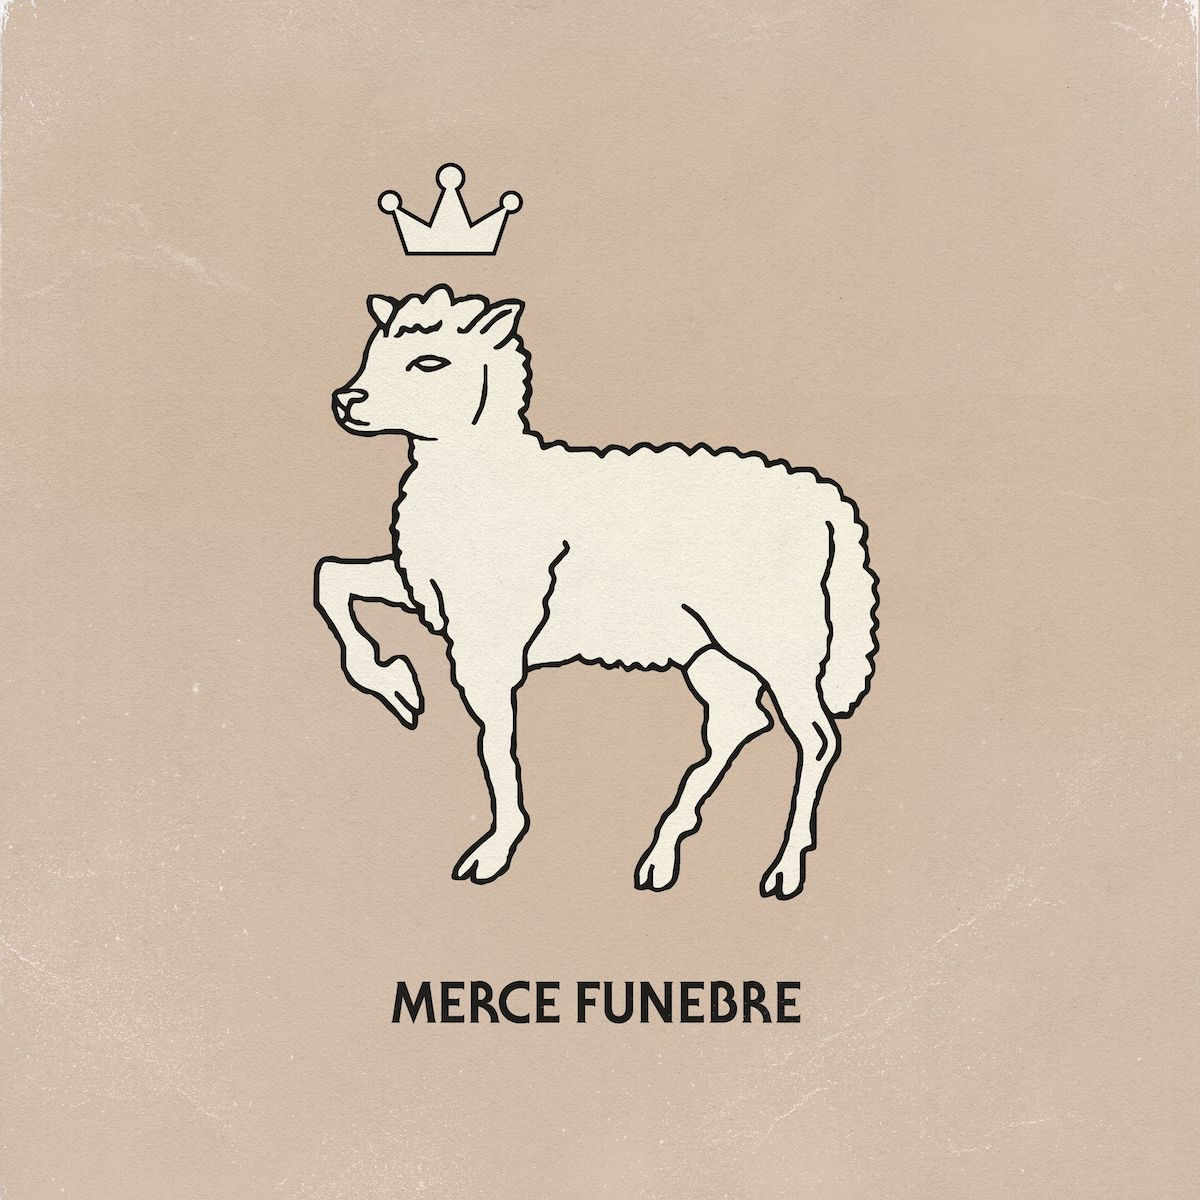 Merce funebre - Tutti Fenomeni